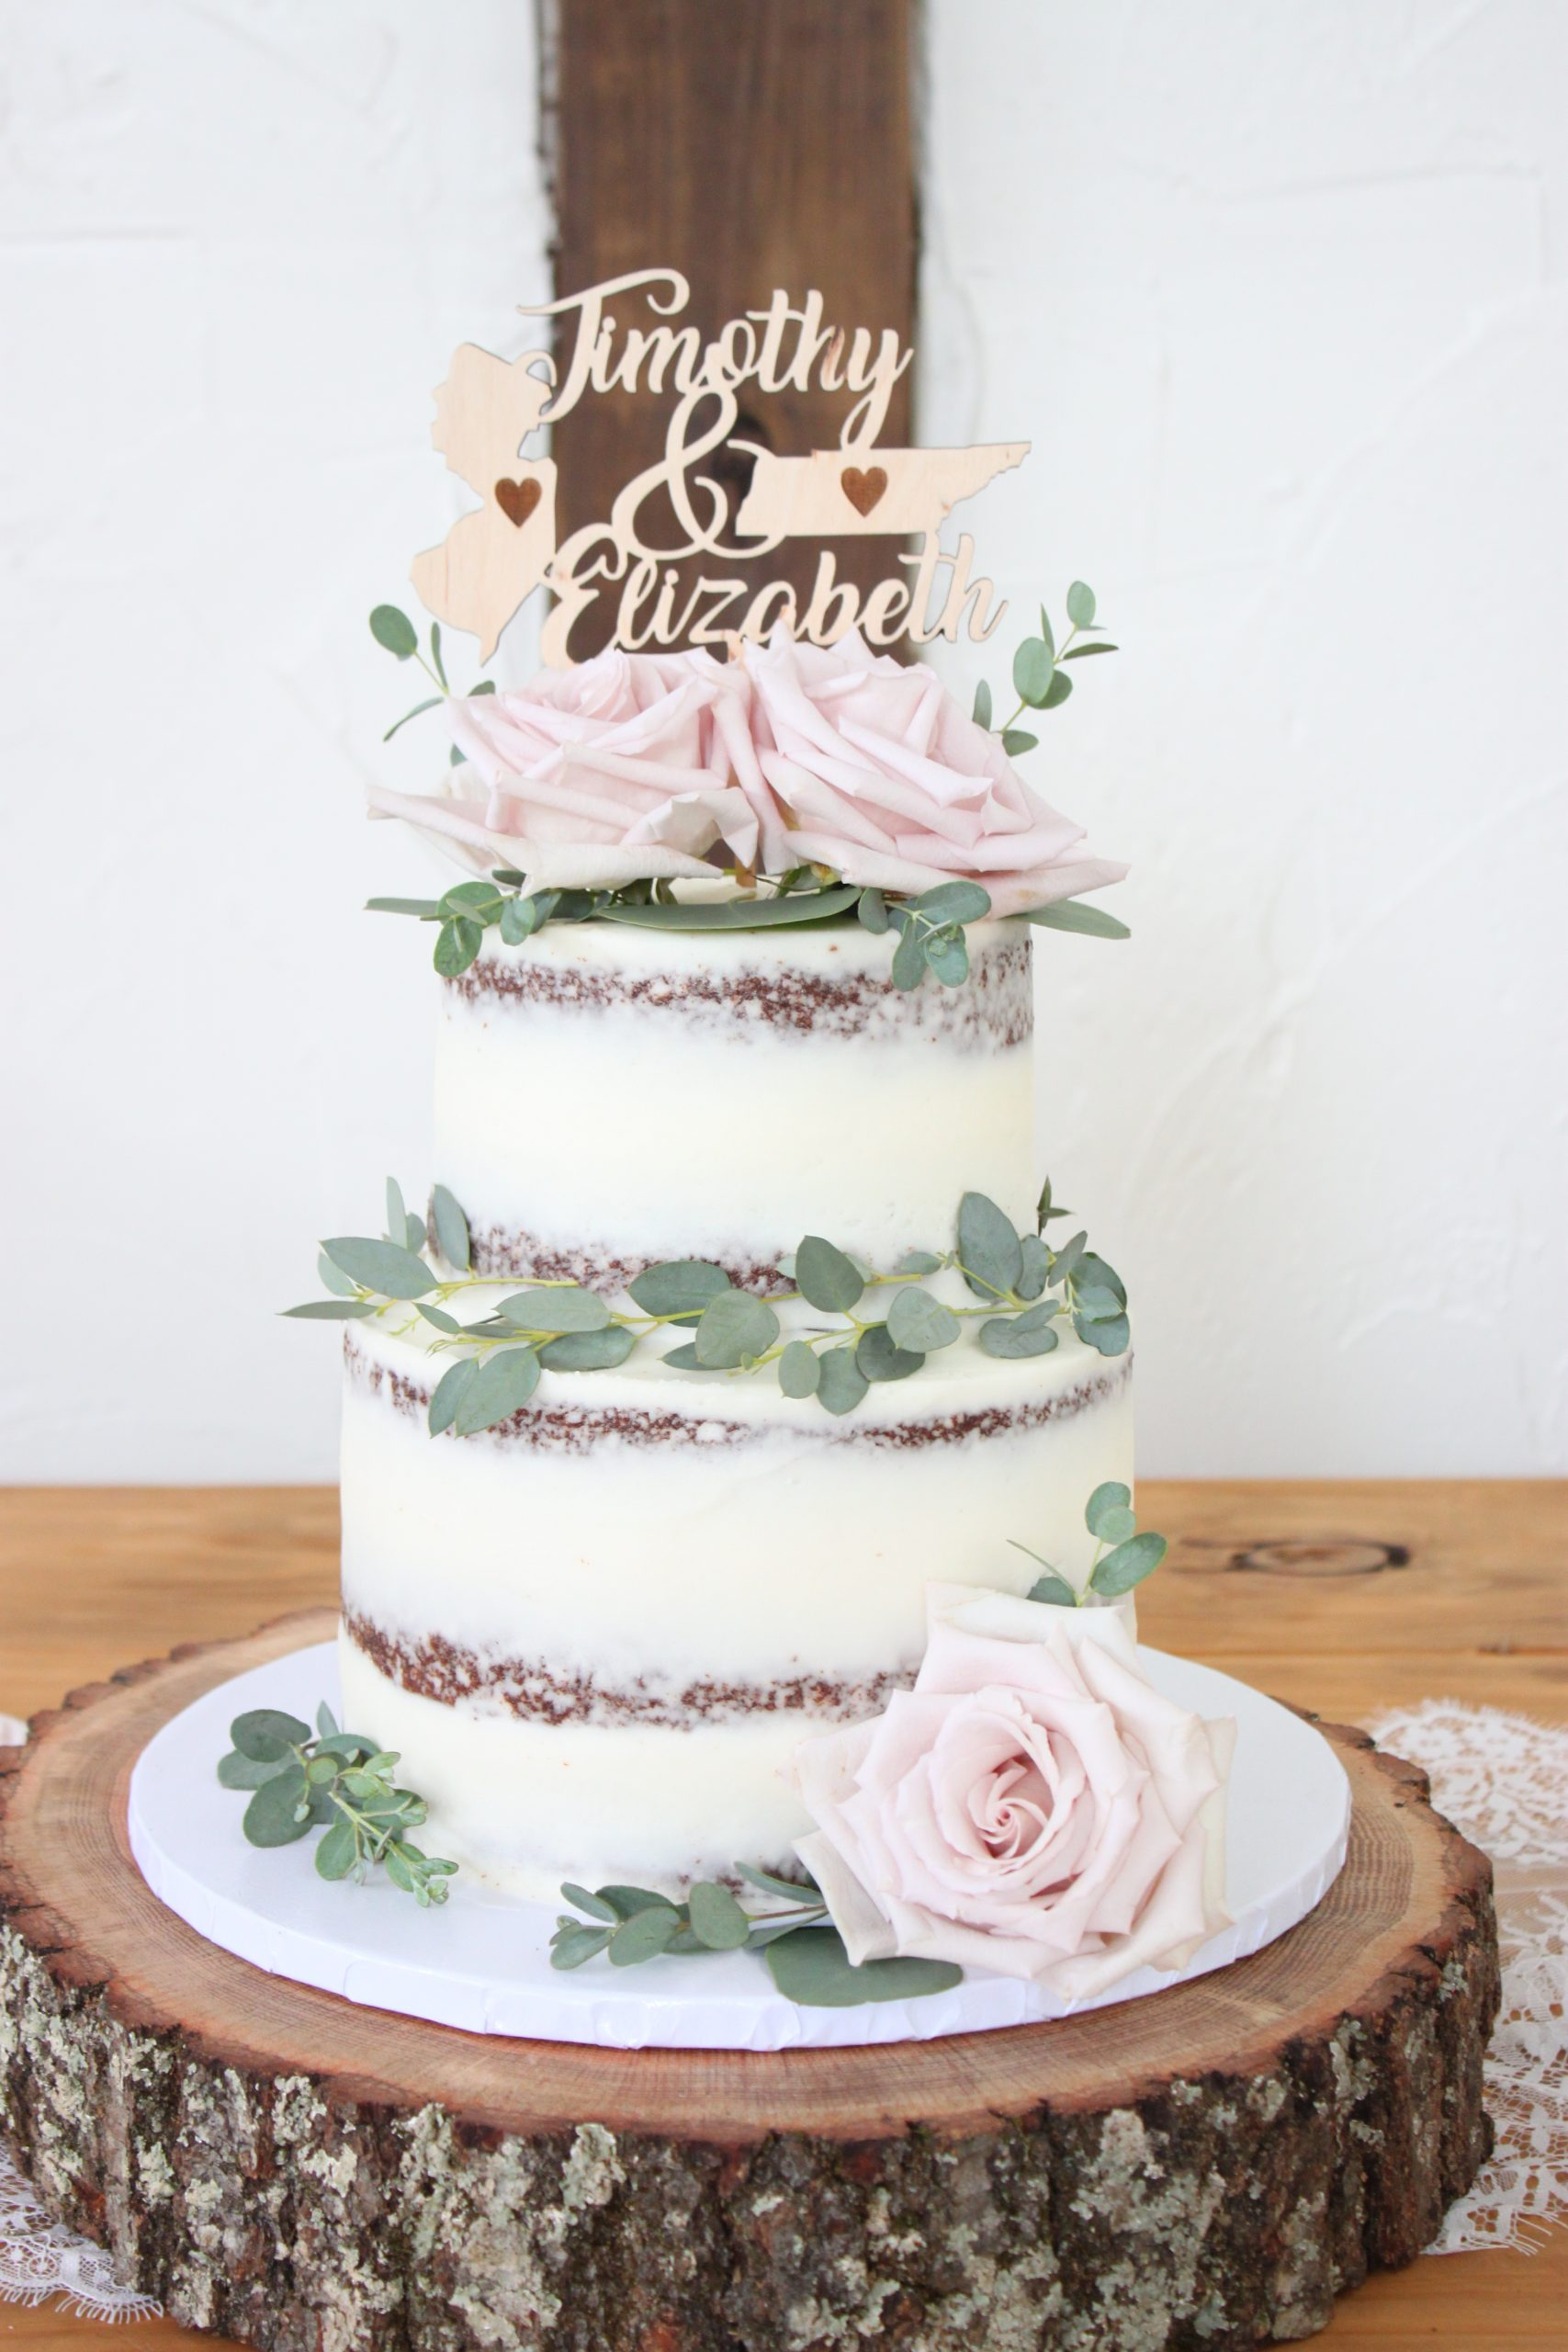 Naked Chocolate Cake with Eucalyptus